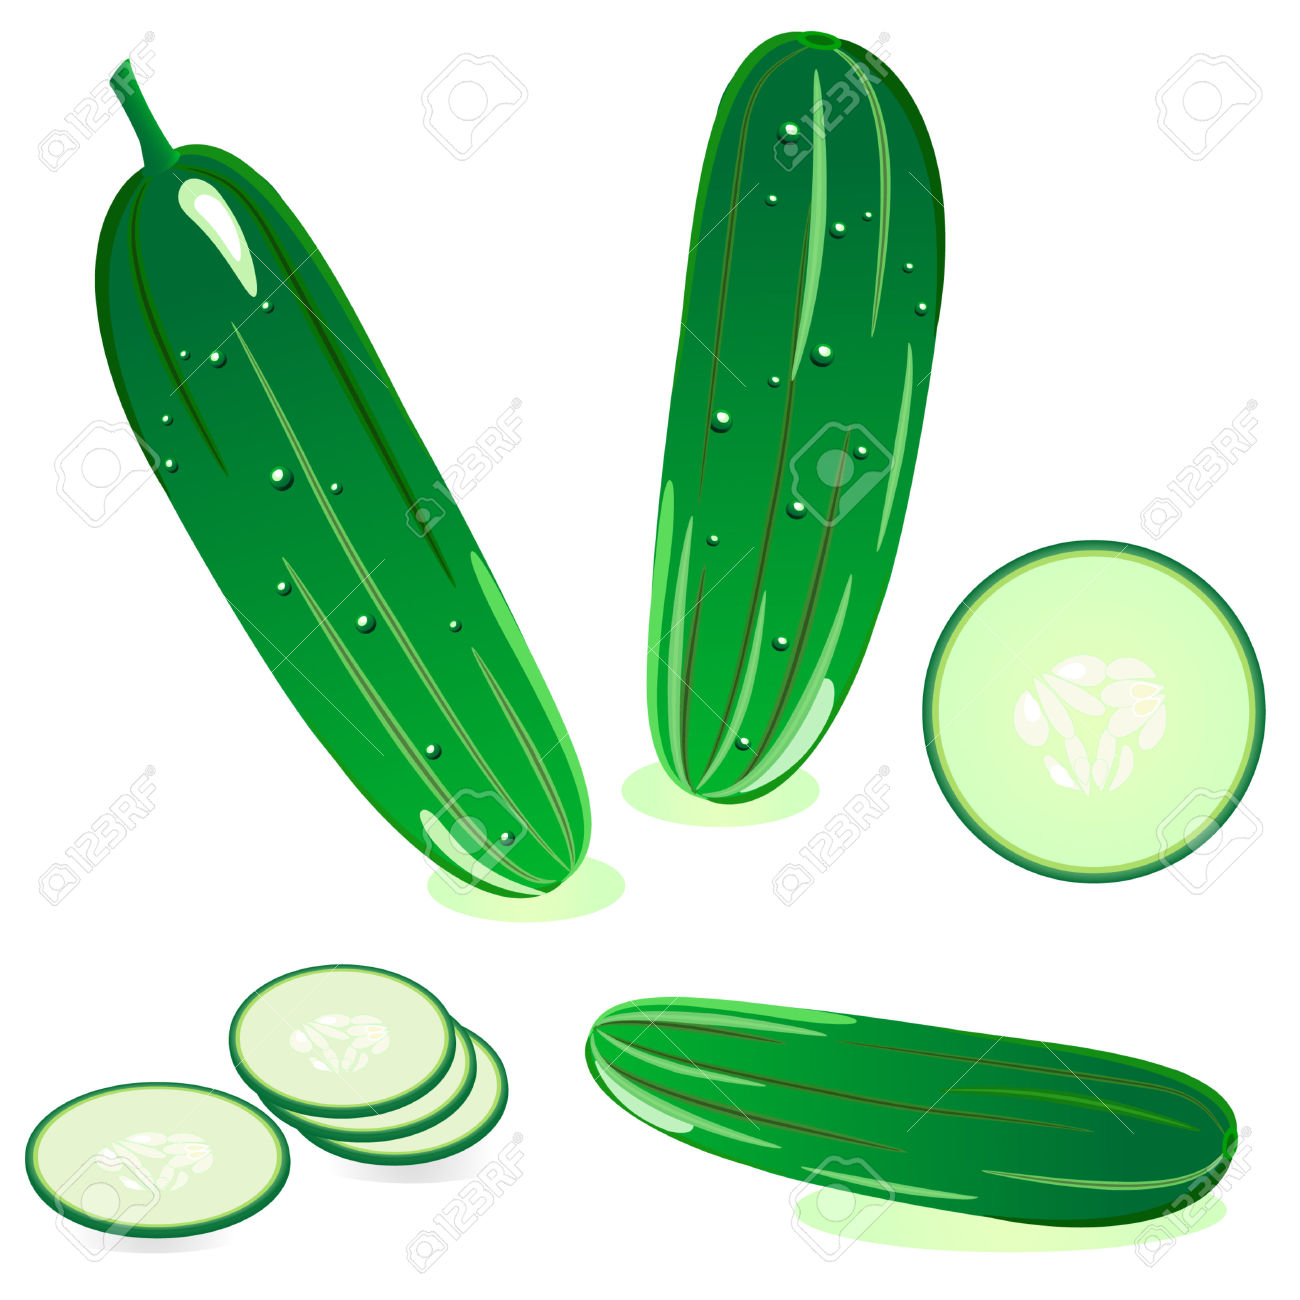 Cucumber vector clipart.